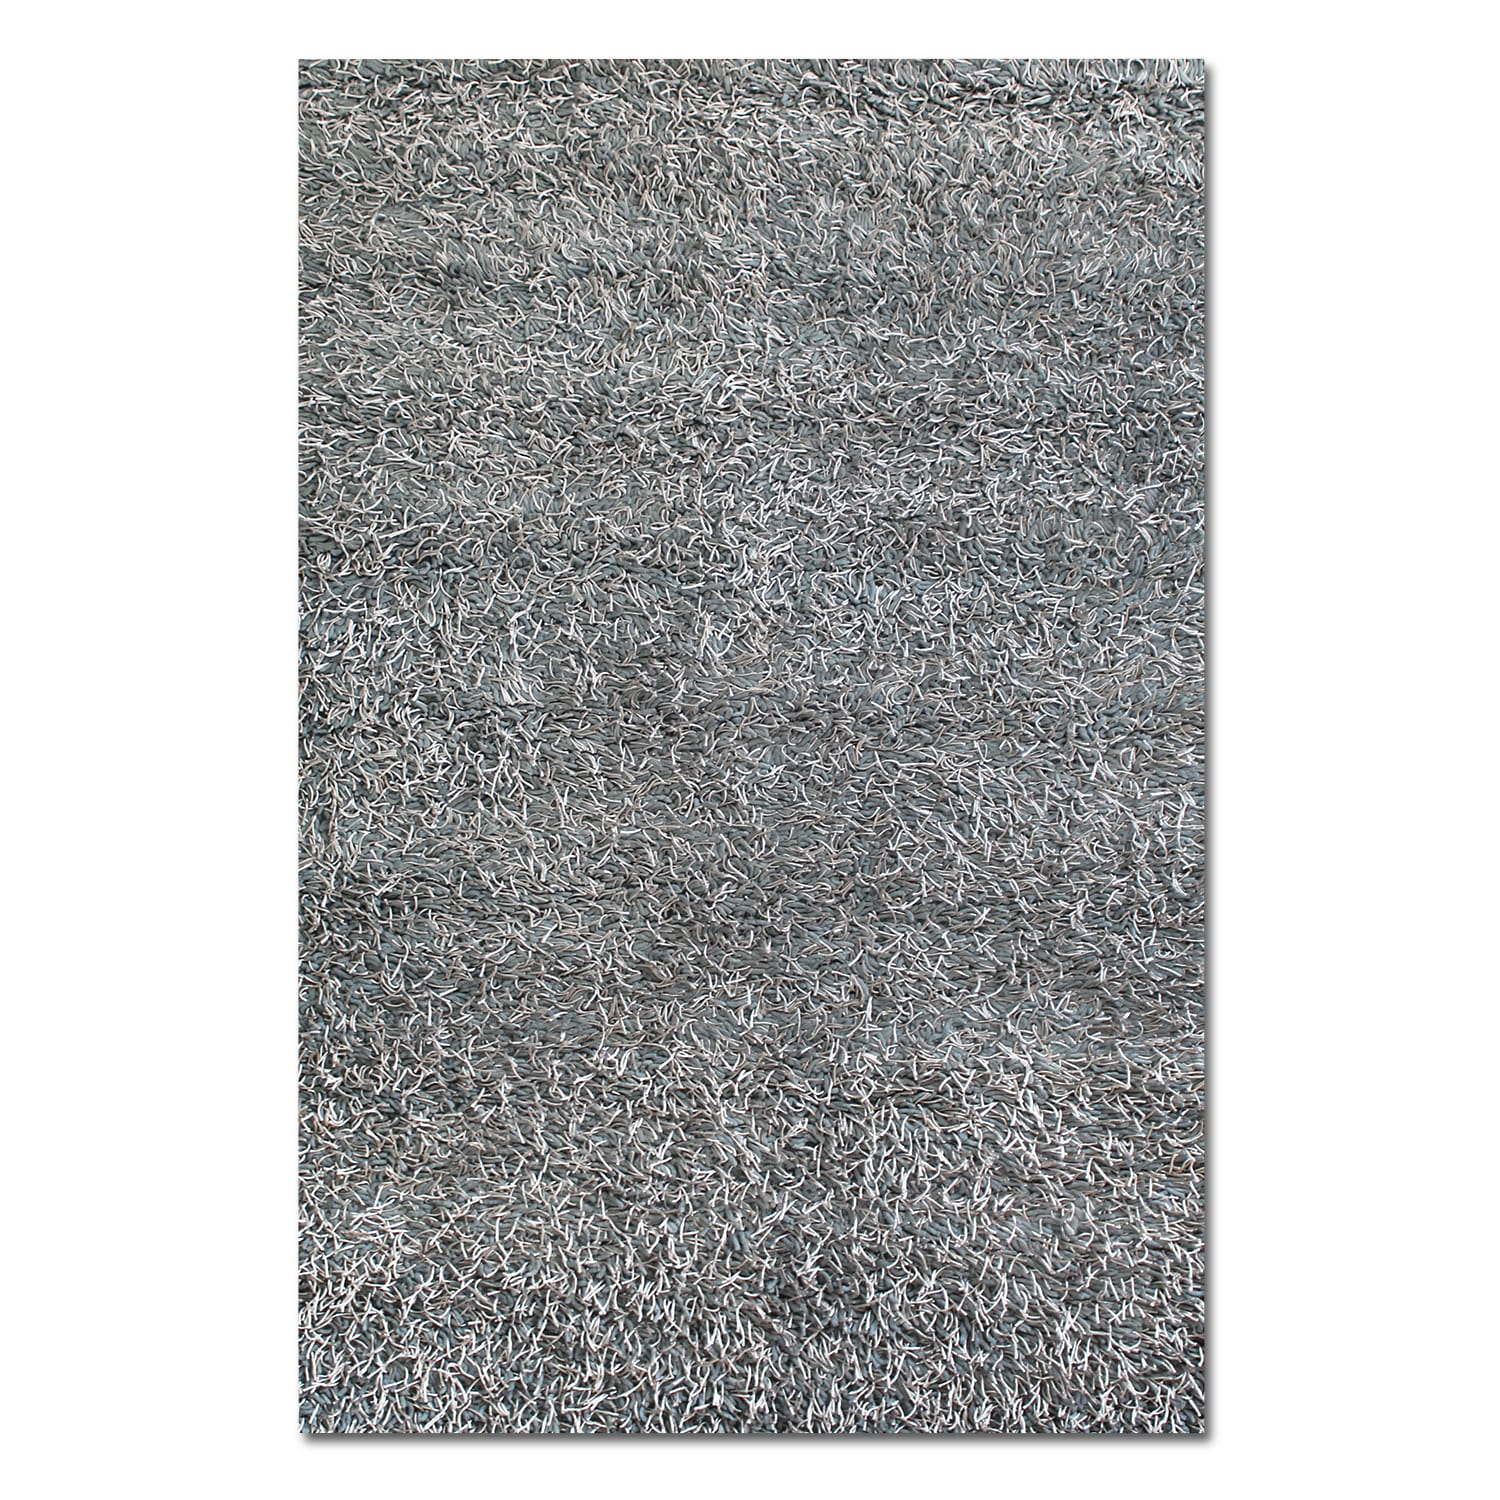 Rugs - Lifestyle Steel Shag Area Rug (8' x 10')